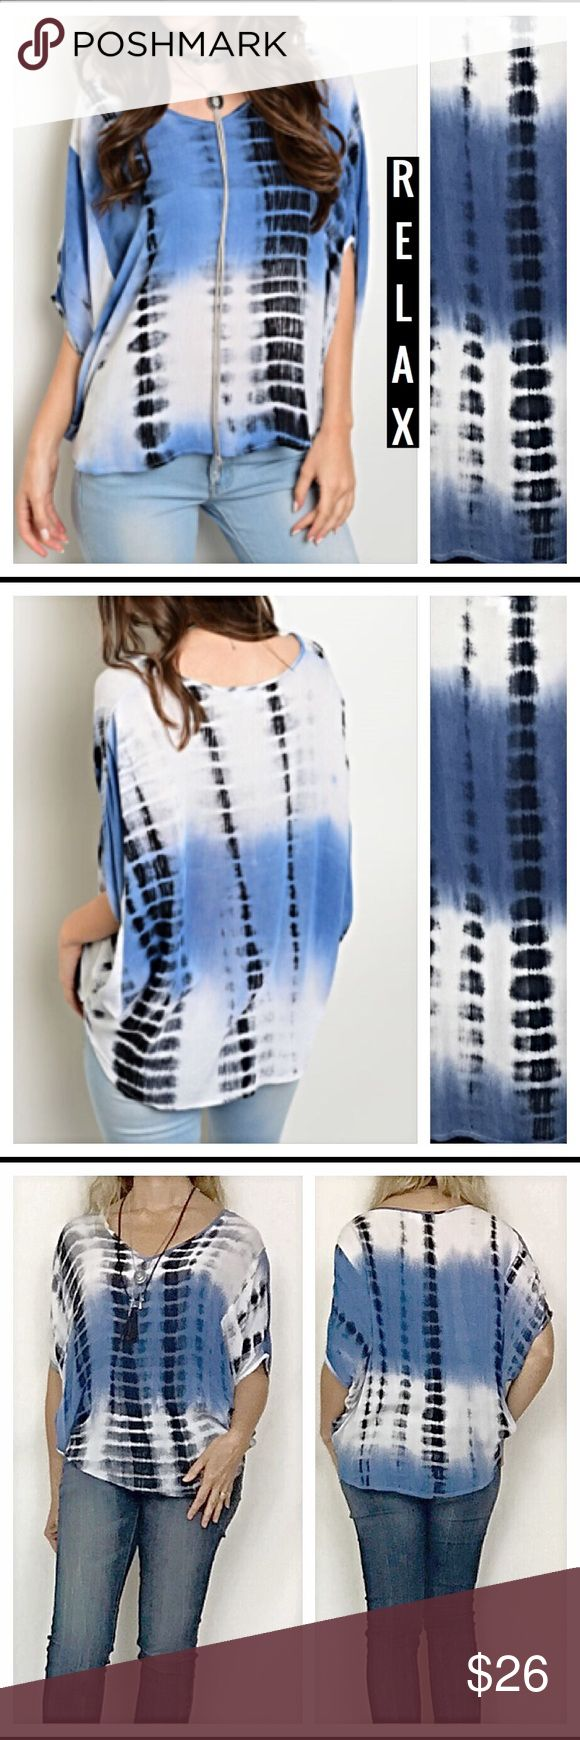 Relax soft tie dye hi low dolman v neck top S M L Relax in style in this adorable hi low tie dye dolman sleeve top in Ivory  black  amp  blue   Flowy Woven 100  rayon  Measurements laying flat  Small Chest 27 quot  Front length 24 quot  Back Length 26 quot   Medium Chest 28 quot  Front Length 24 5 Back Length 26 5  Large Chest 29 quot  Front Length 25 quot  Back Length 27 quot  Tops